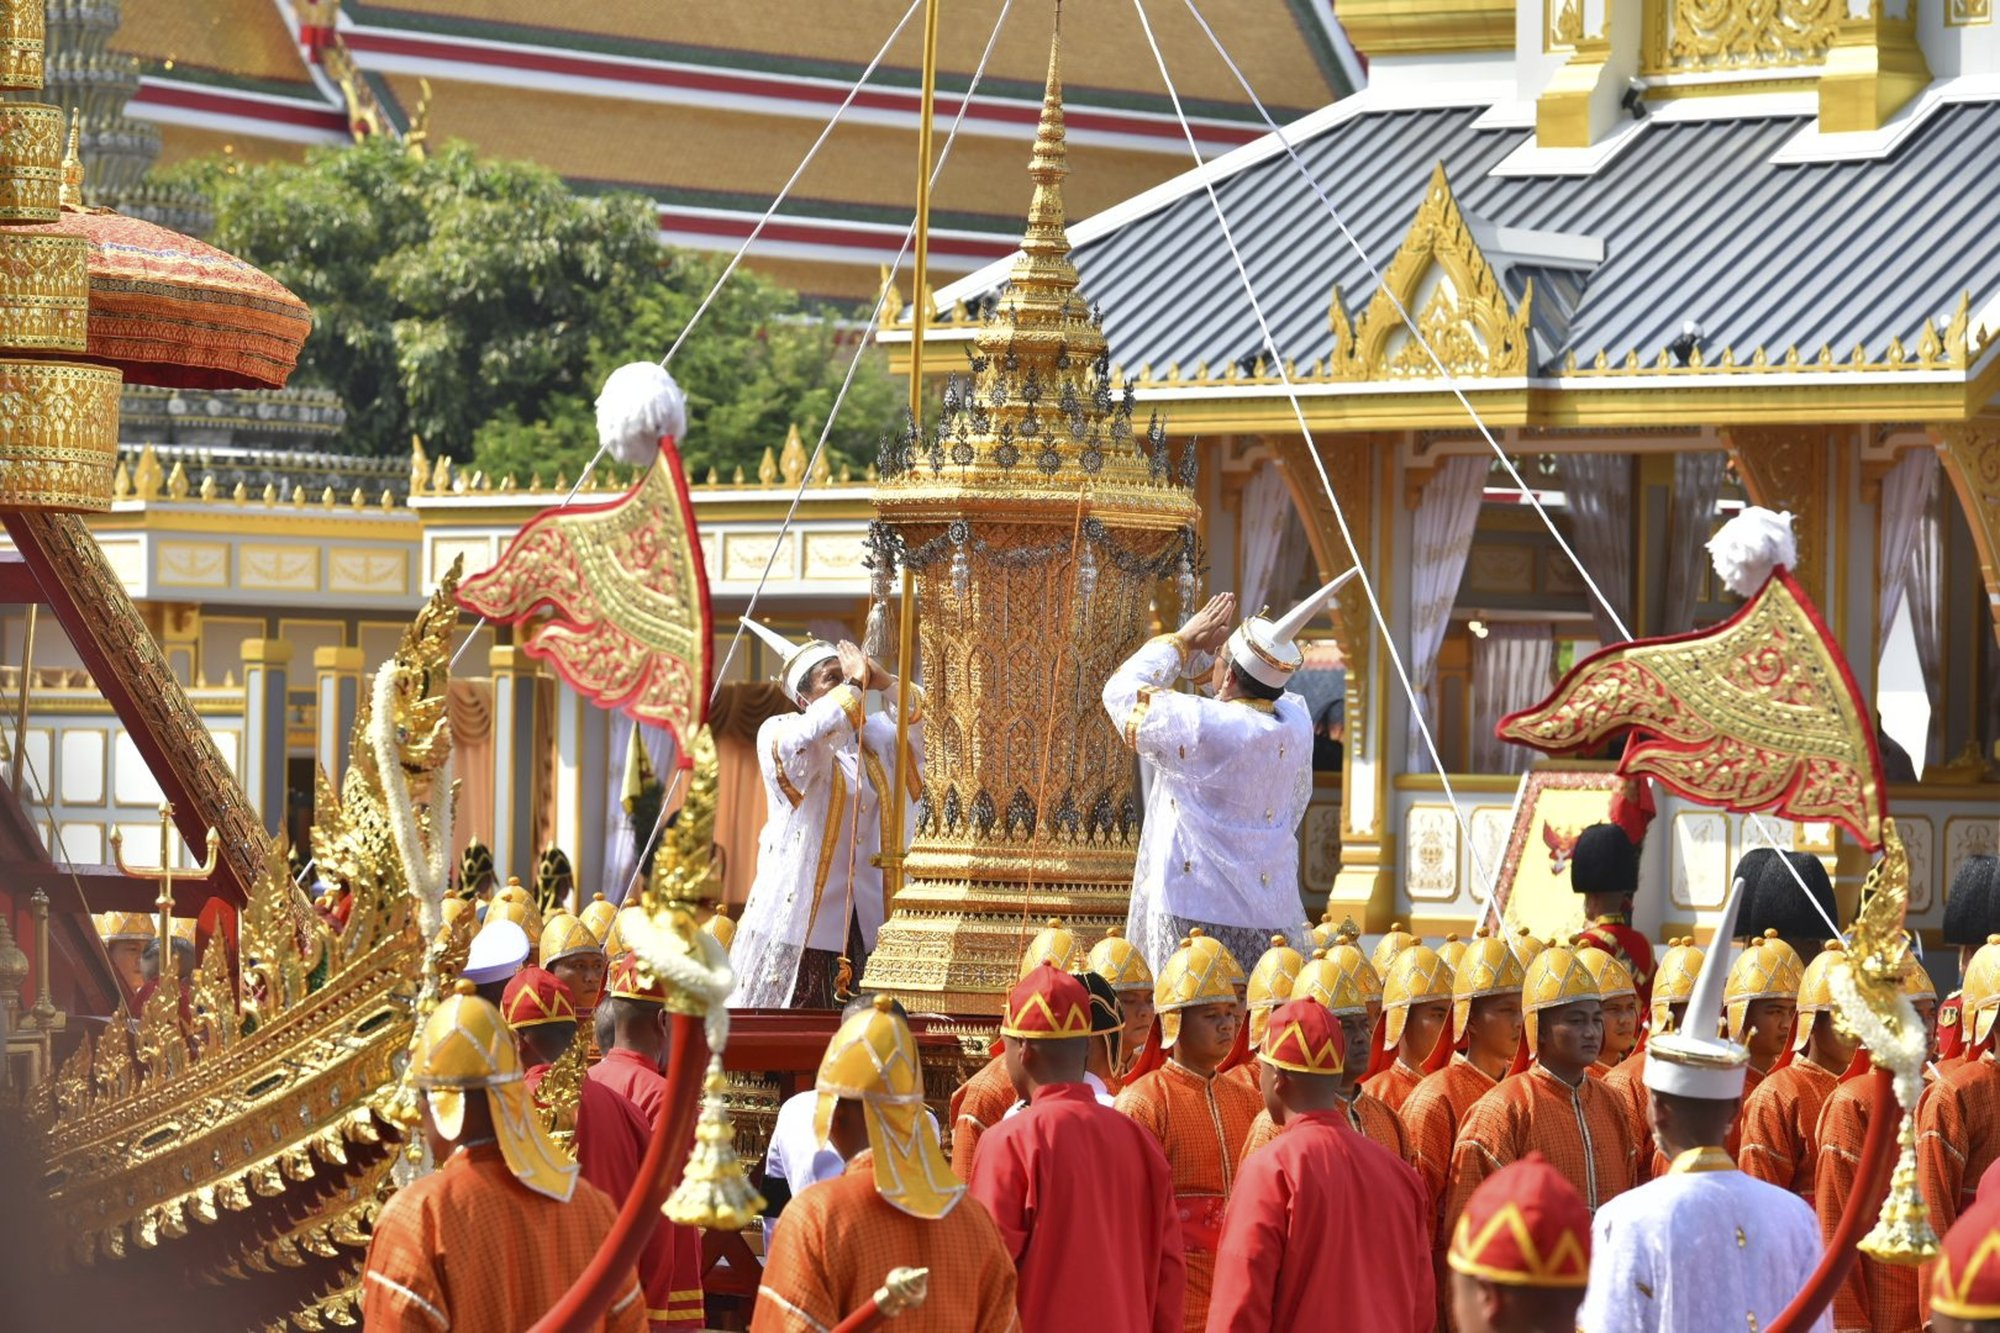 A revered king is put to rest in thailand 5 things to know izmirmasajfo